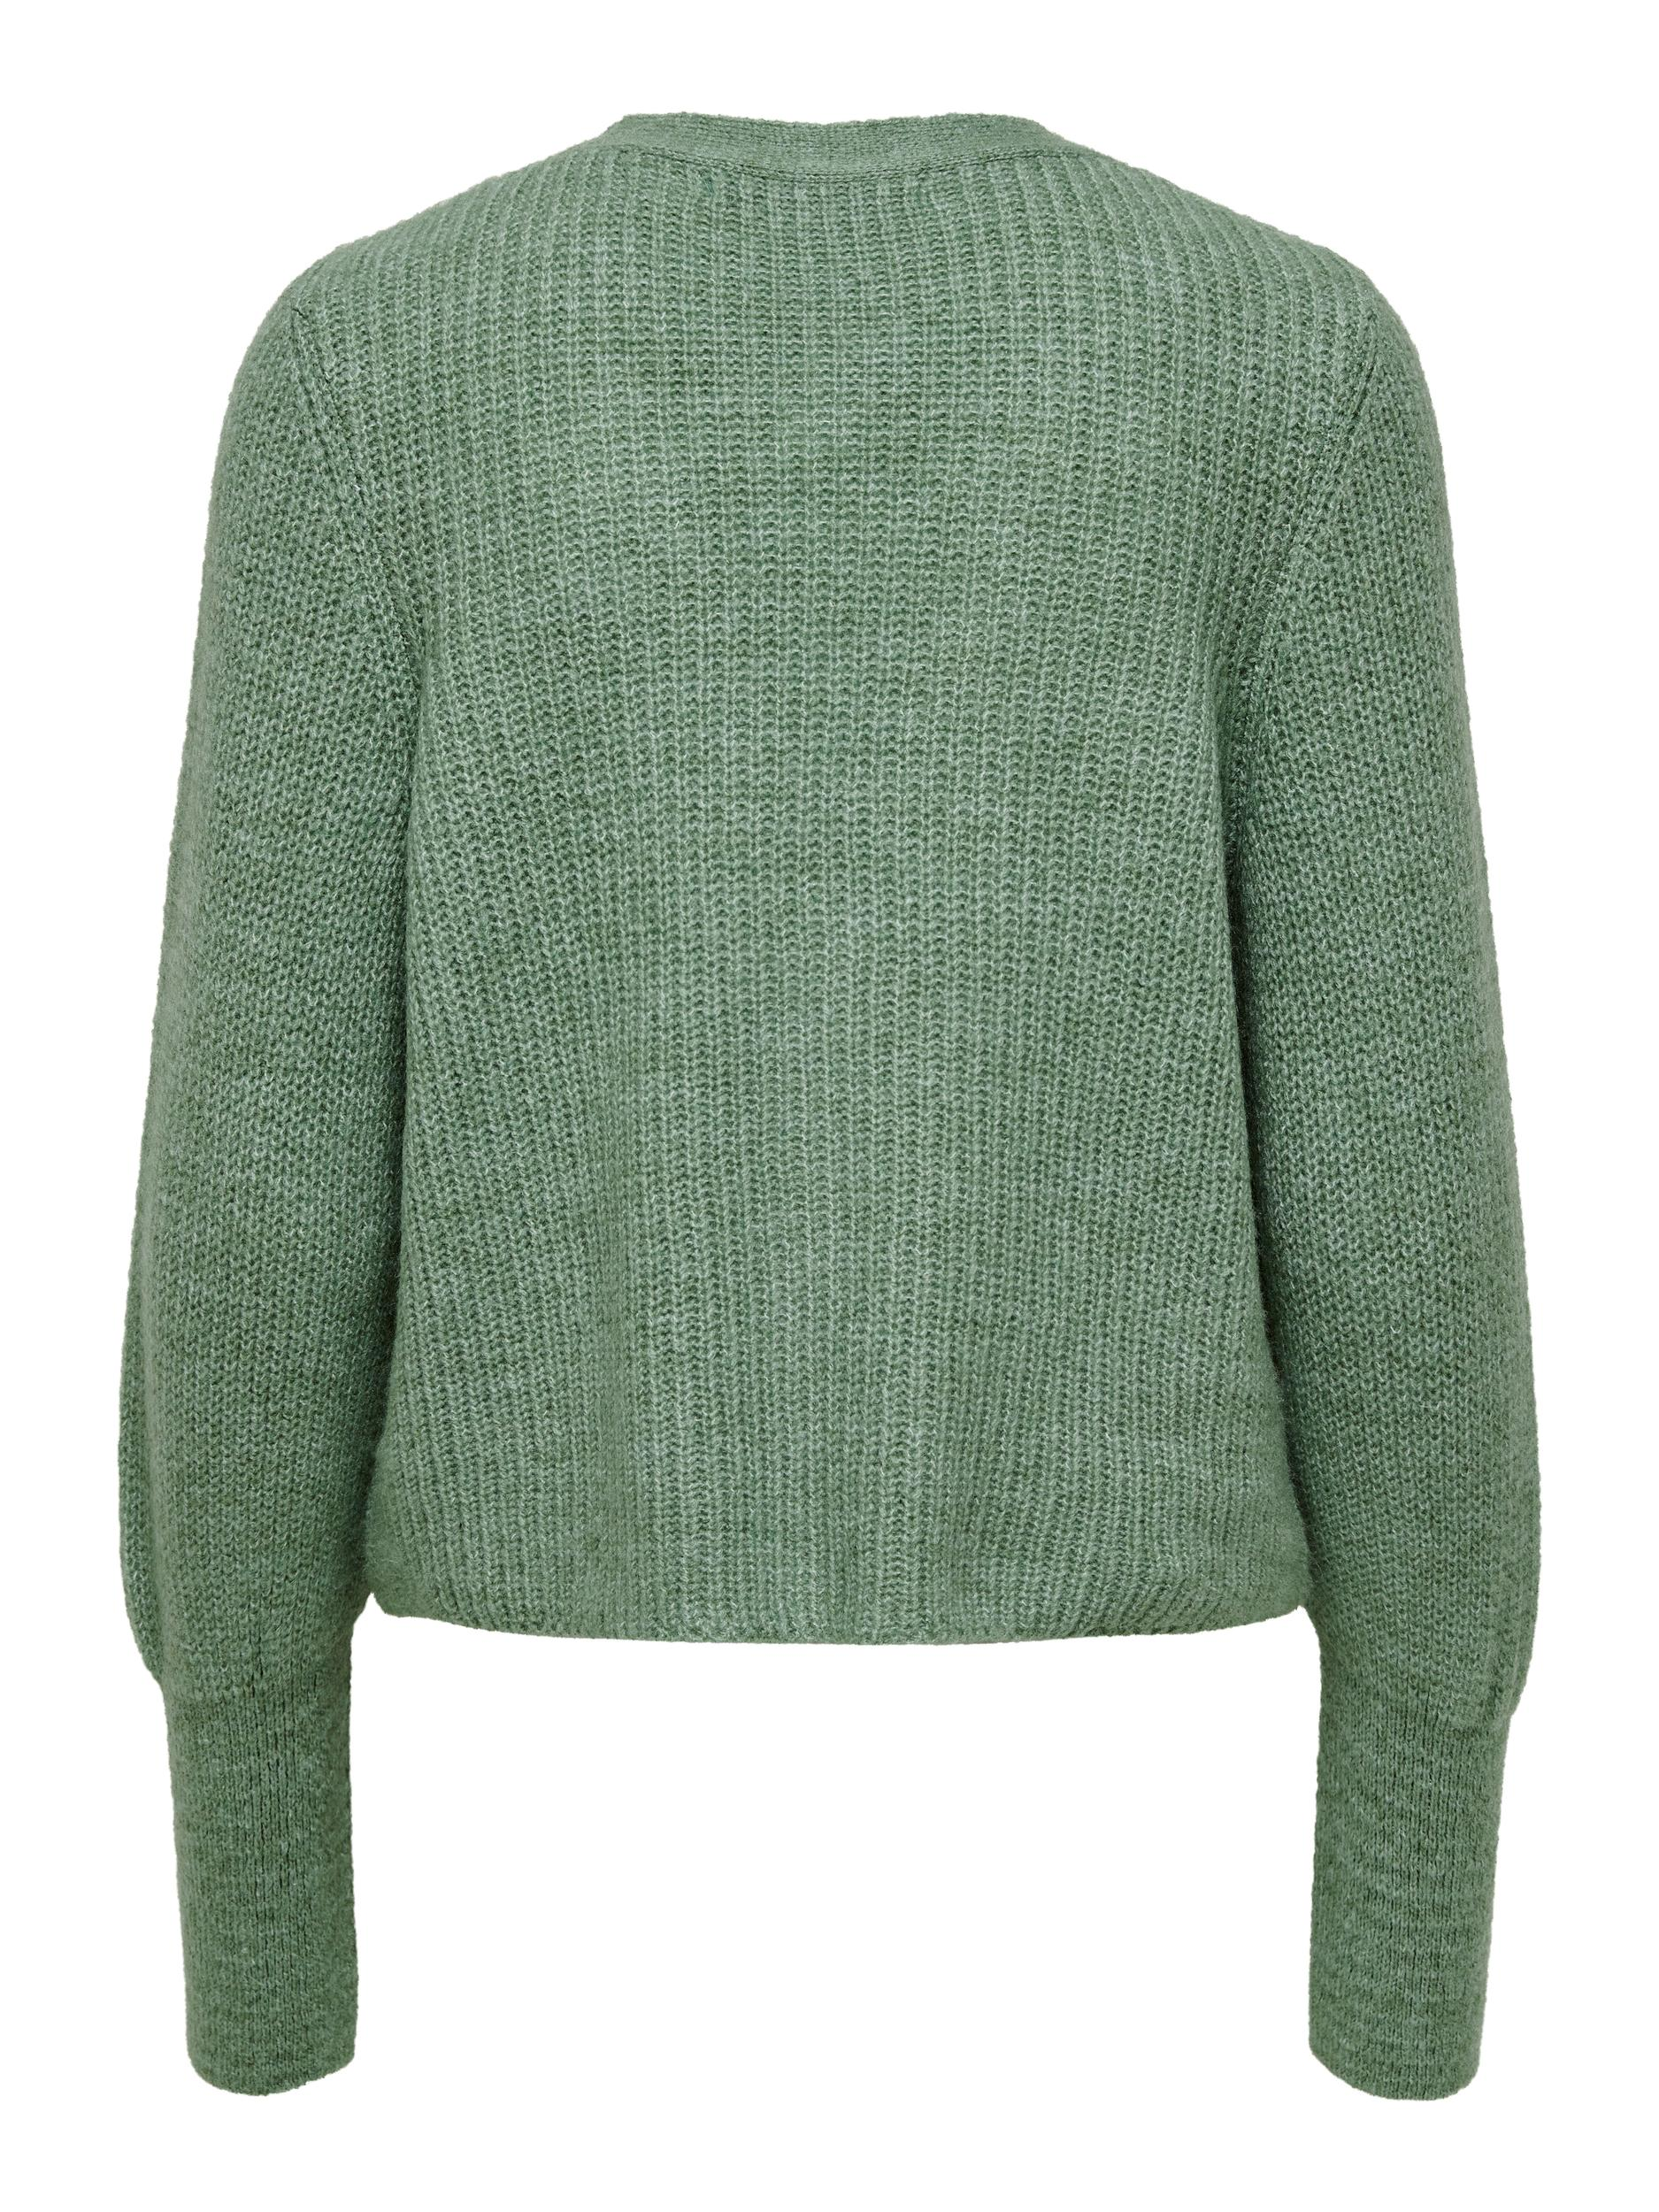 ONLY Clare cardigan, granite green, x-large